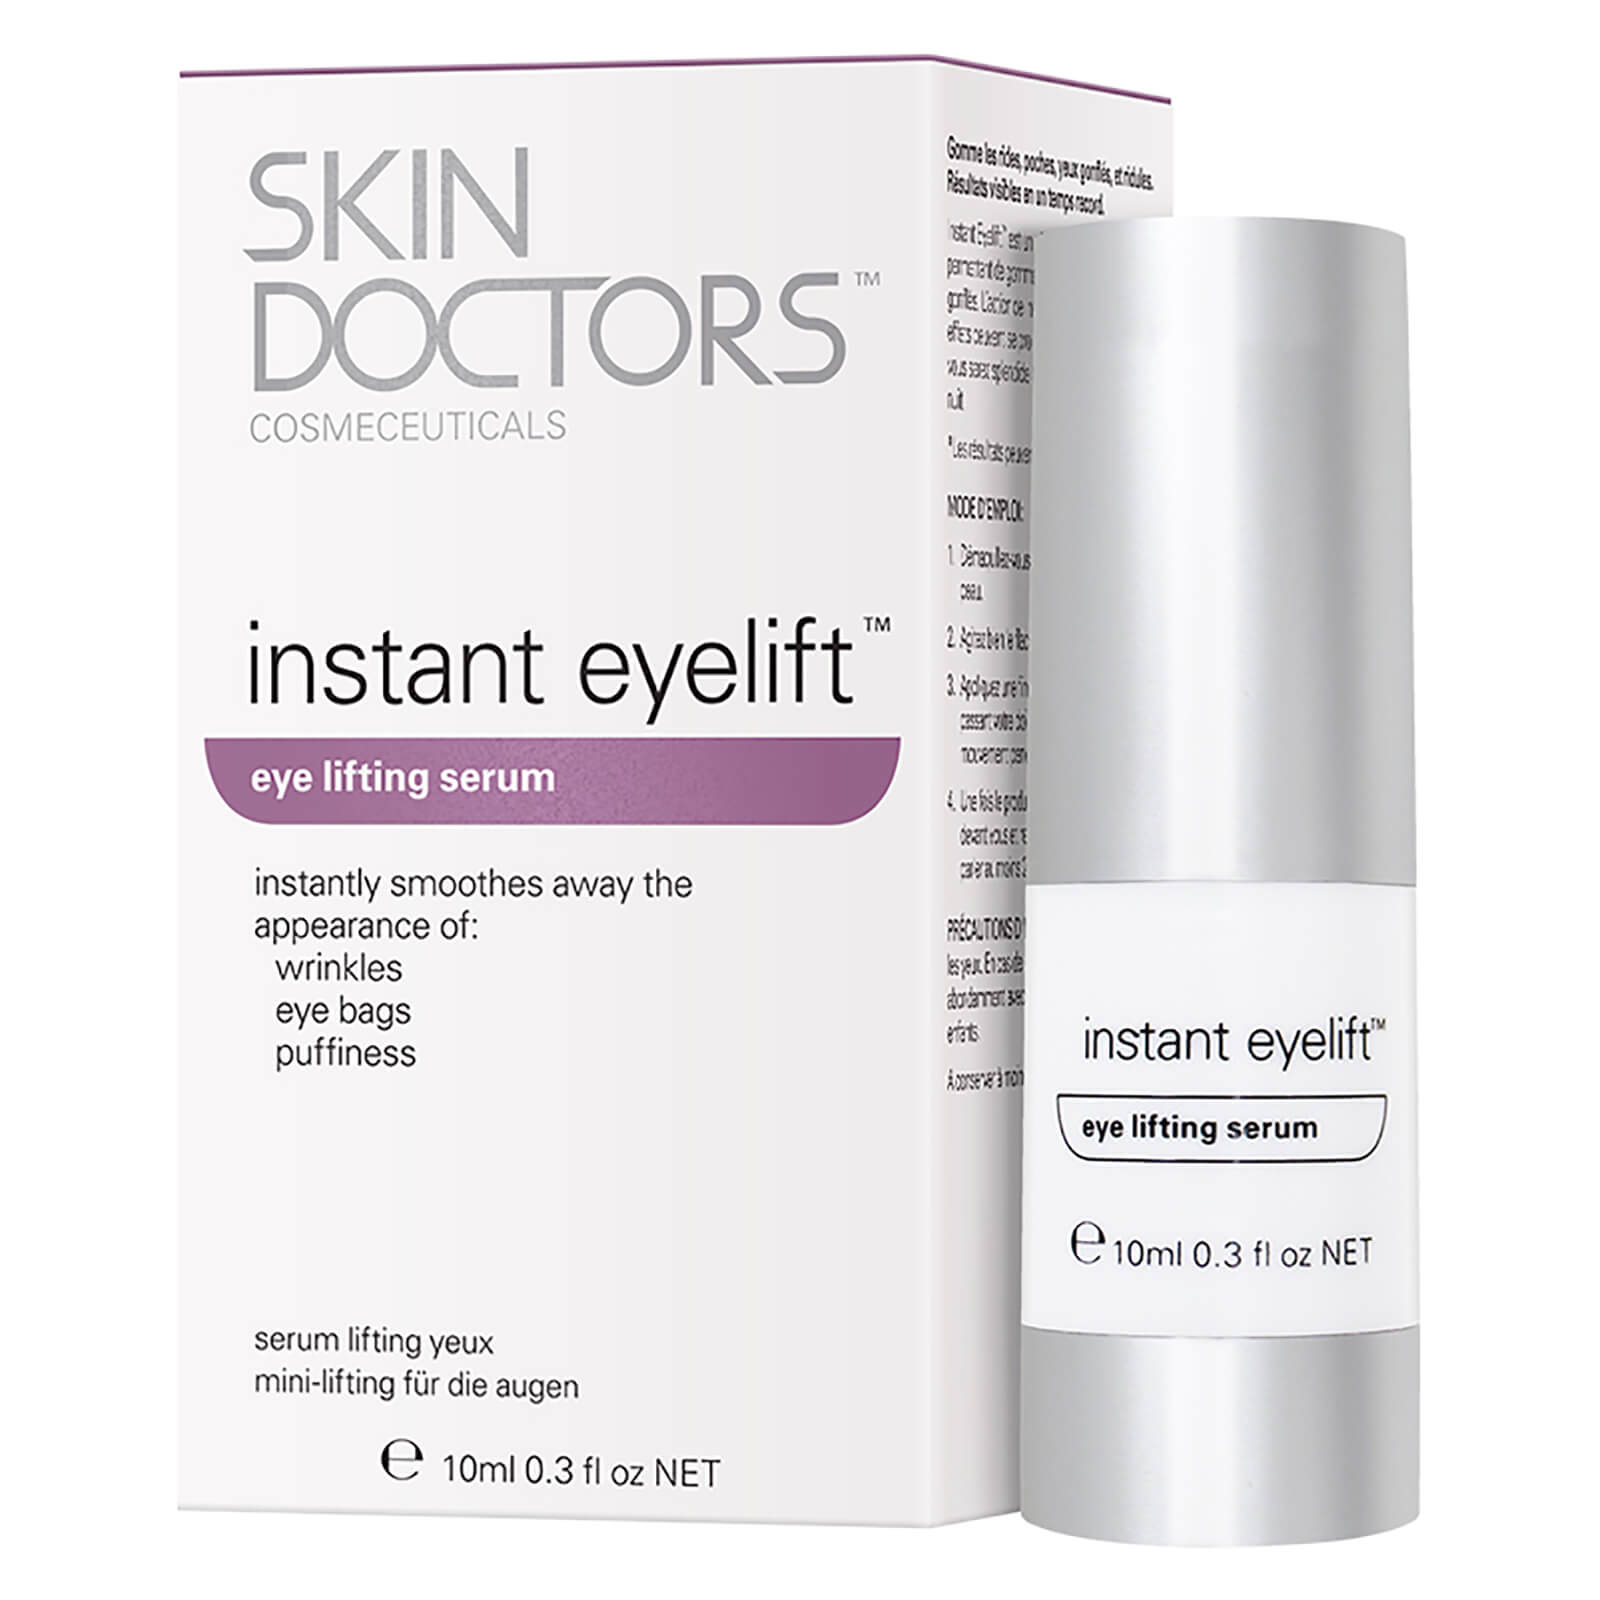 skin doctors instant eyelift review